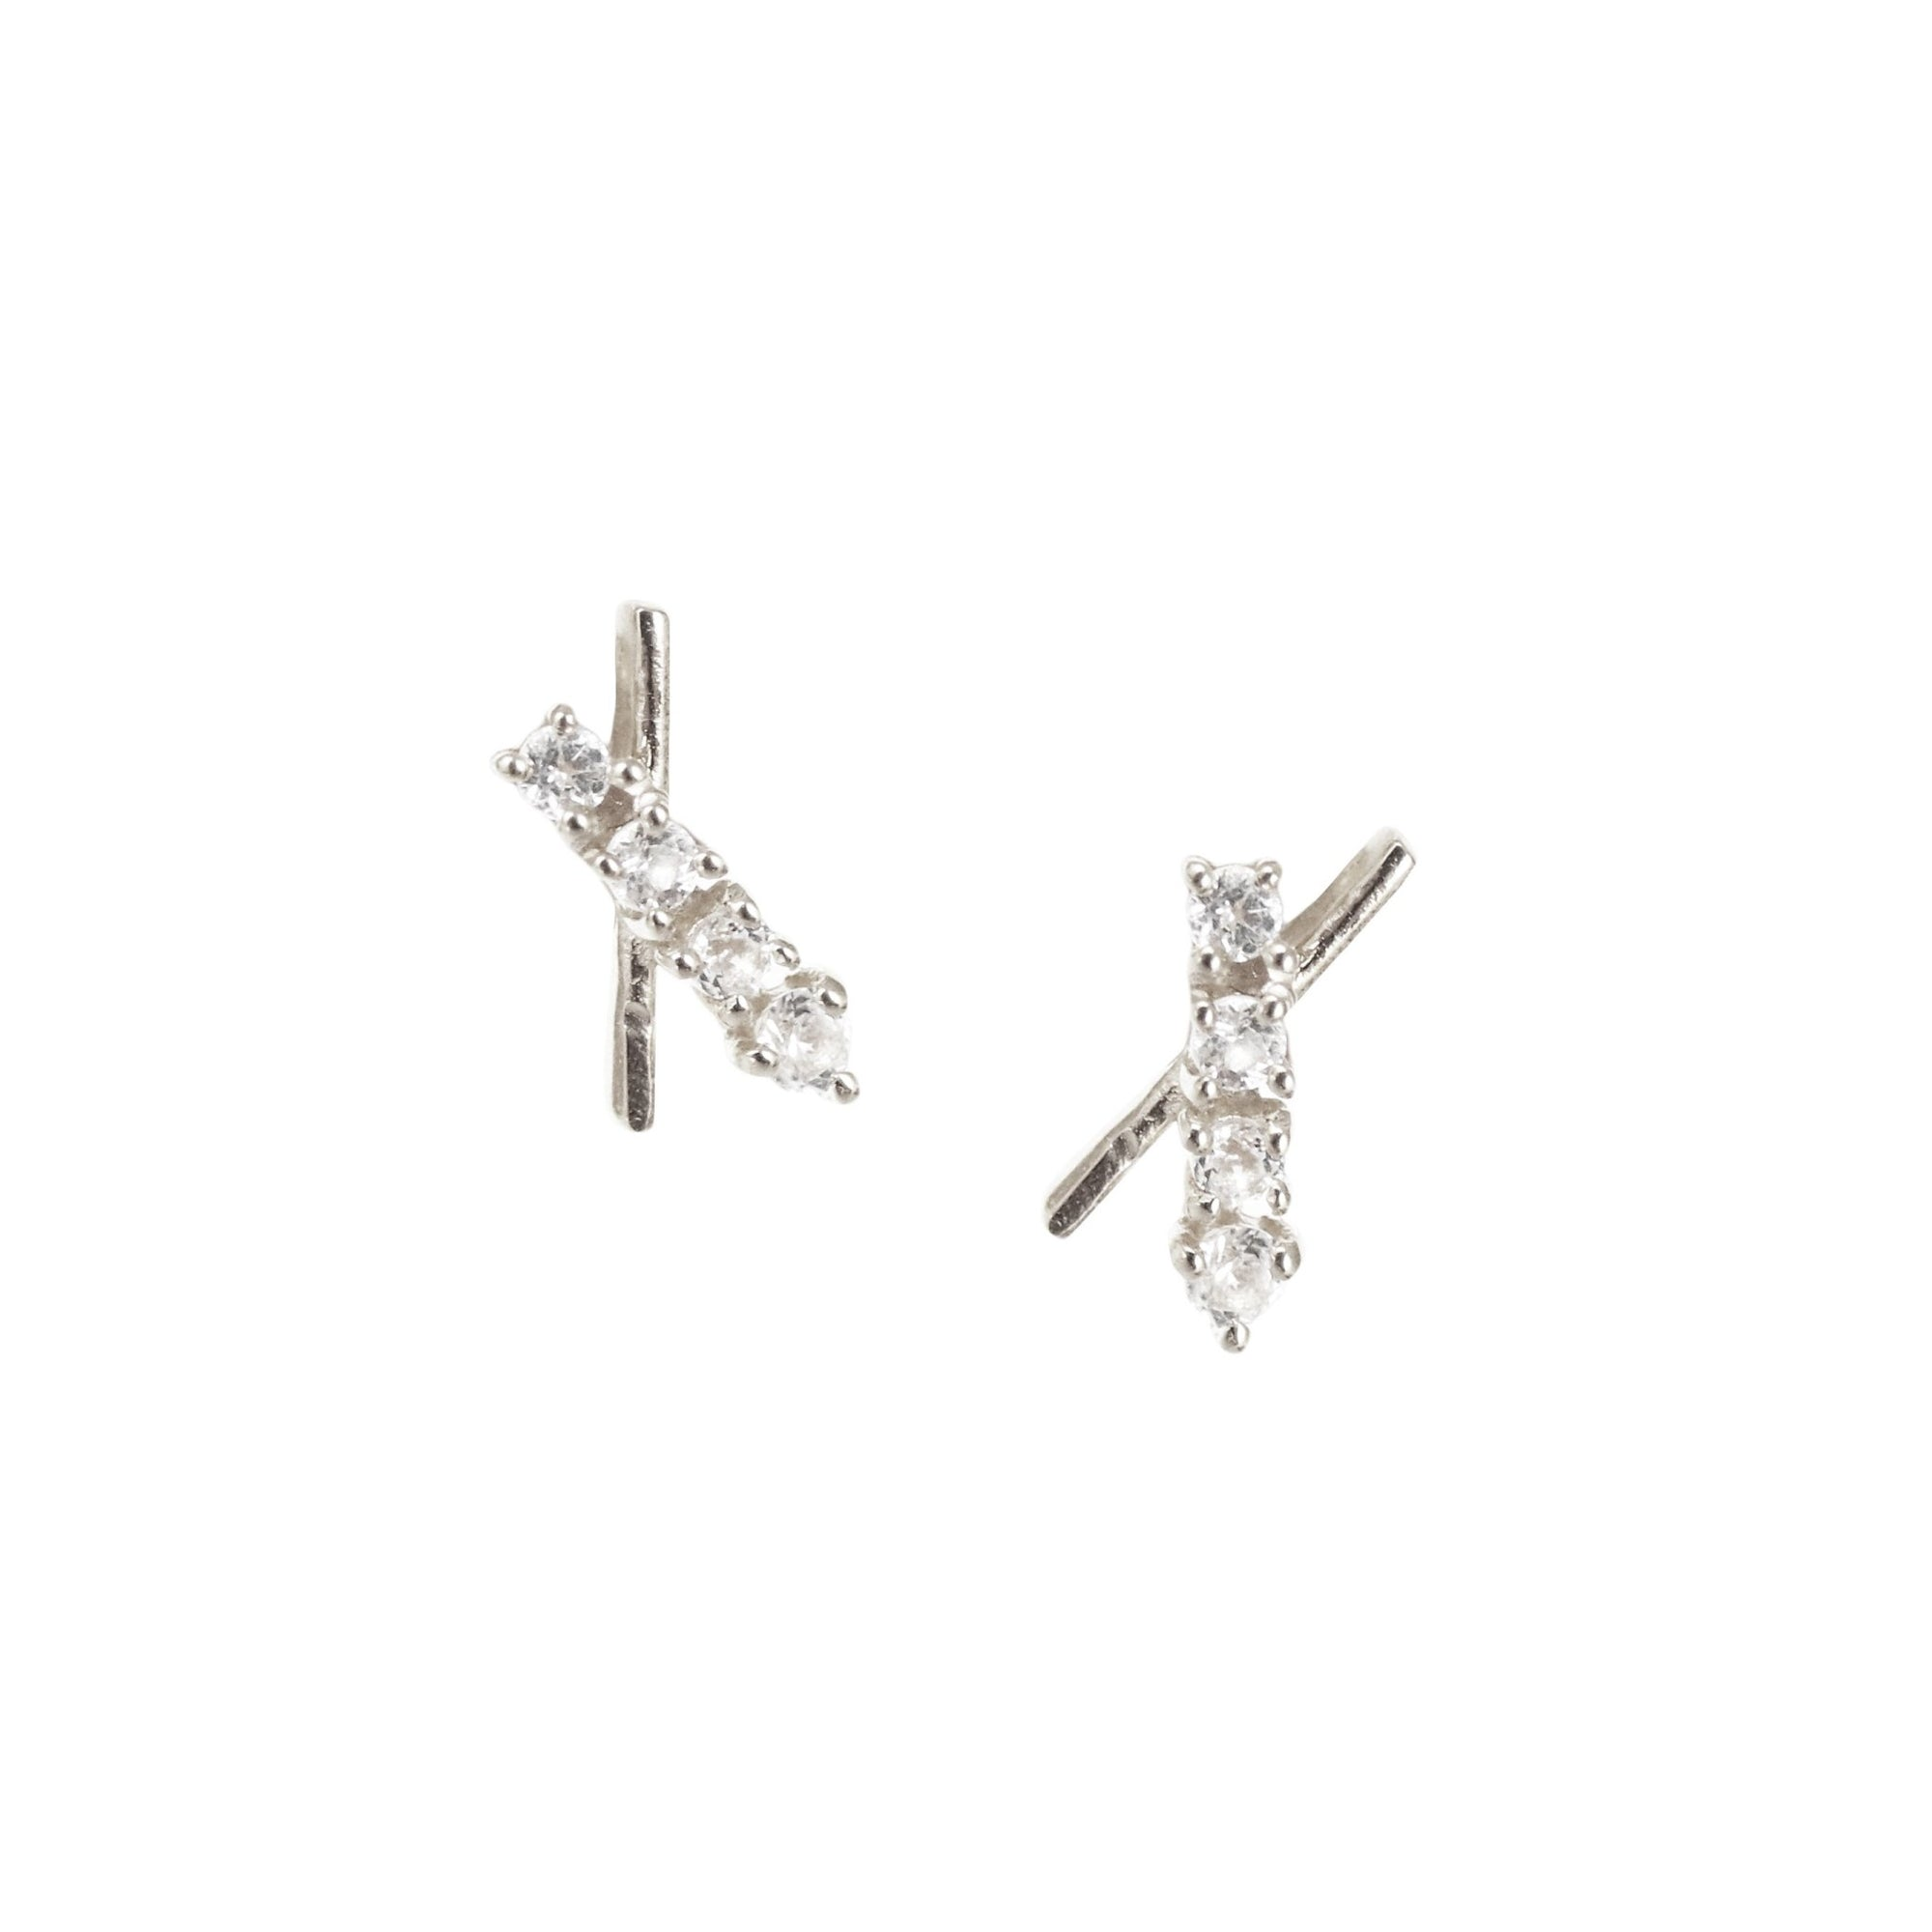 TINY DREAM STARDUST STUDS - CUBIC ZIRCONIA & SILVER - SO PRETTY CARA COTTER